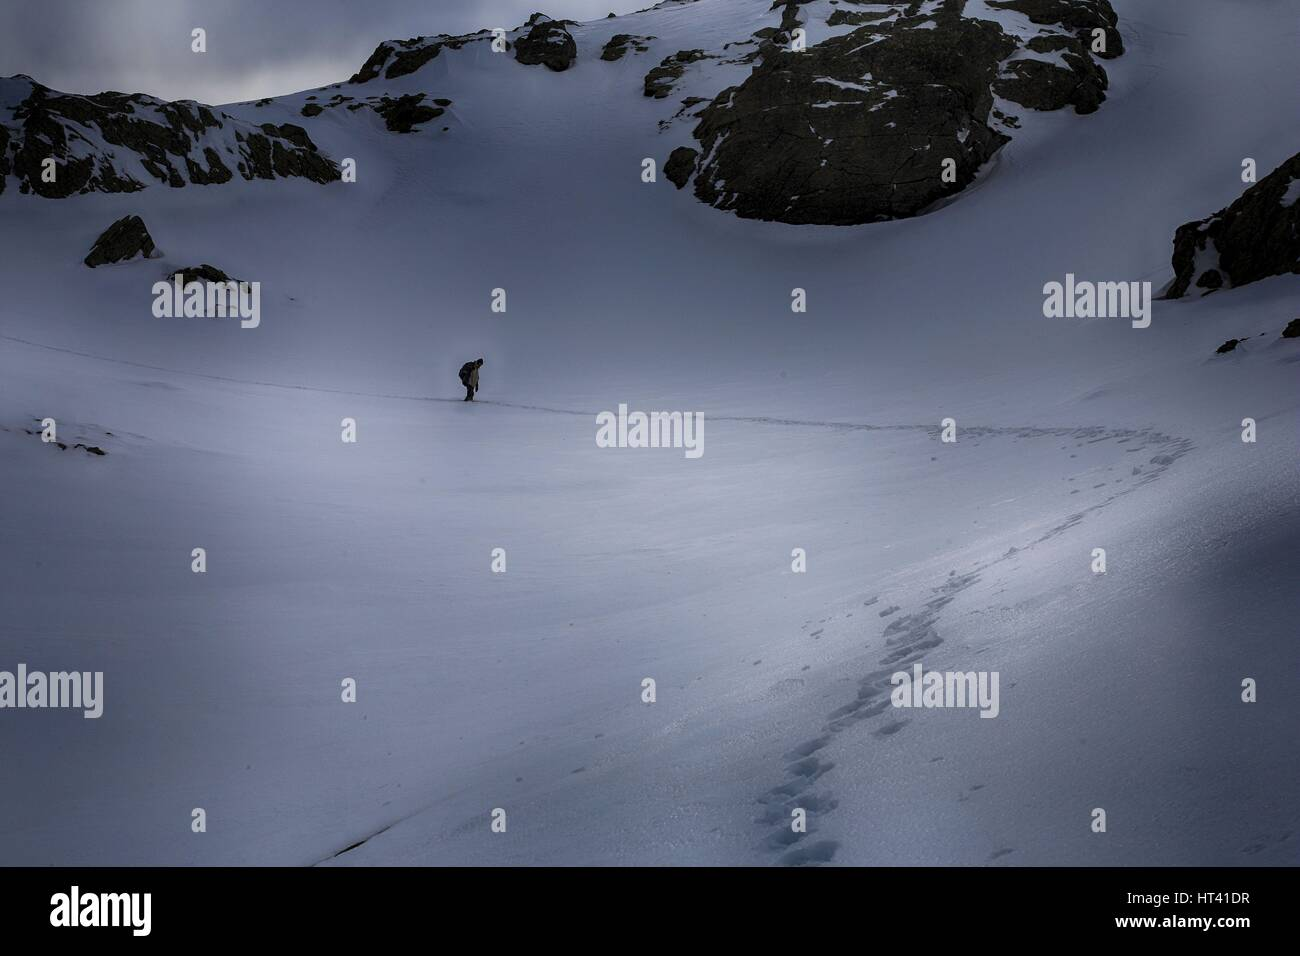 Sar / Sharr Mountains / Malet e Sharrit between Macedonia and Kosovo in winter with climber at the highest peak - Stock Image